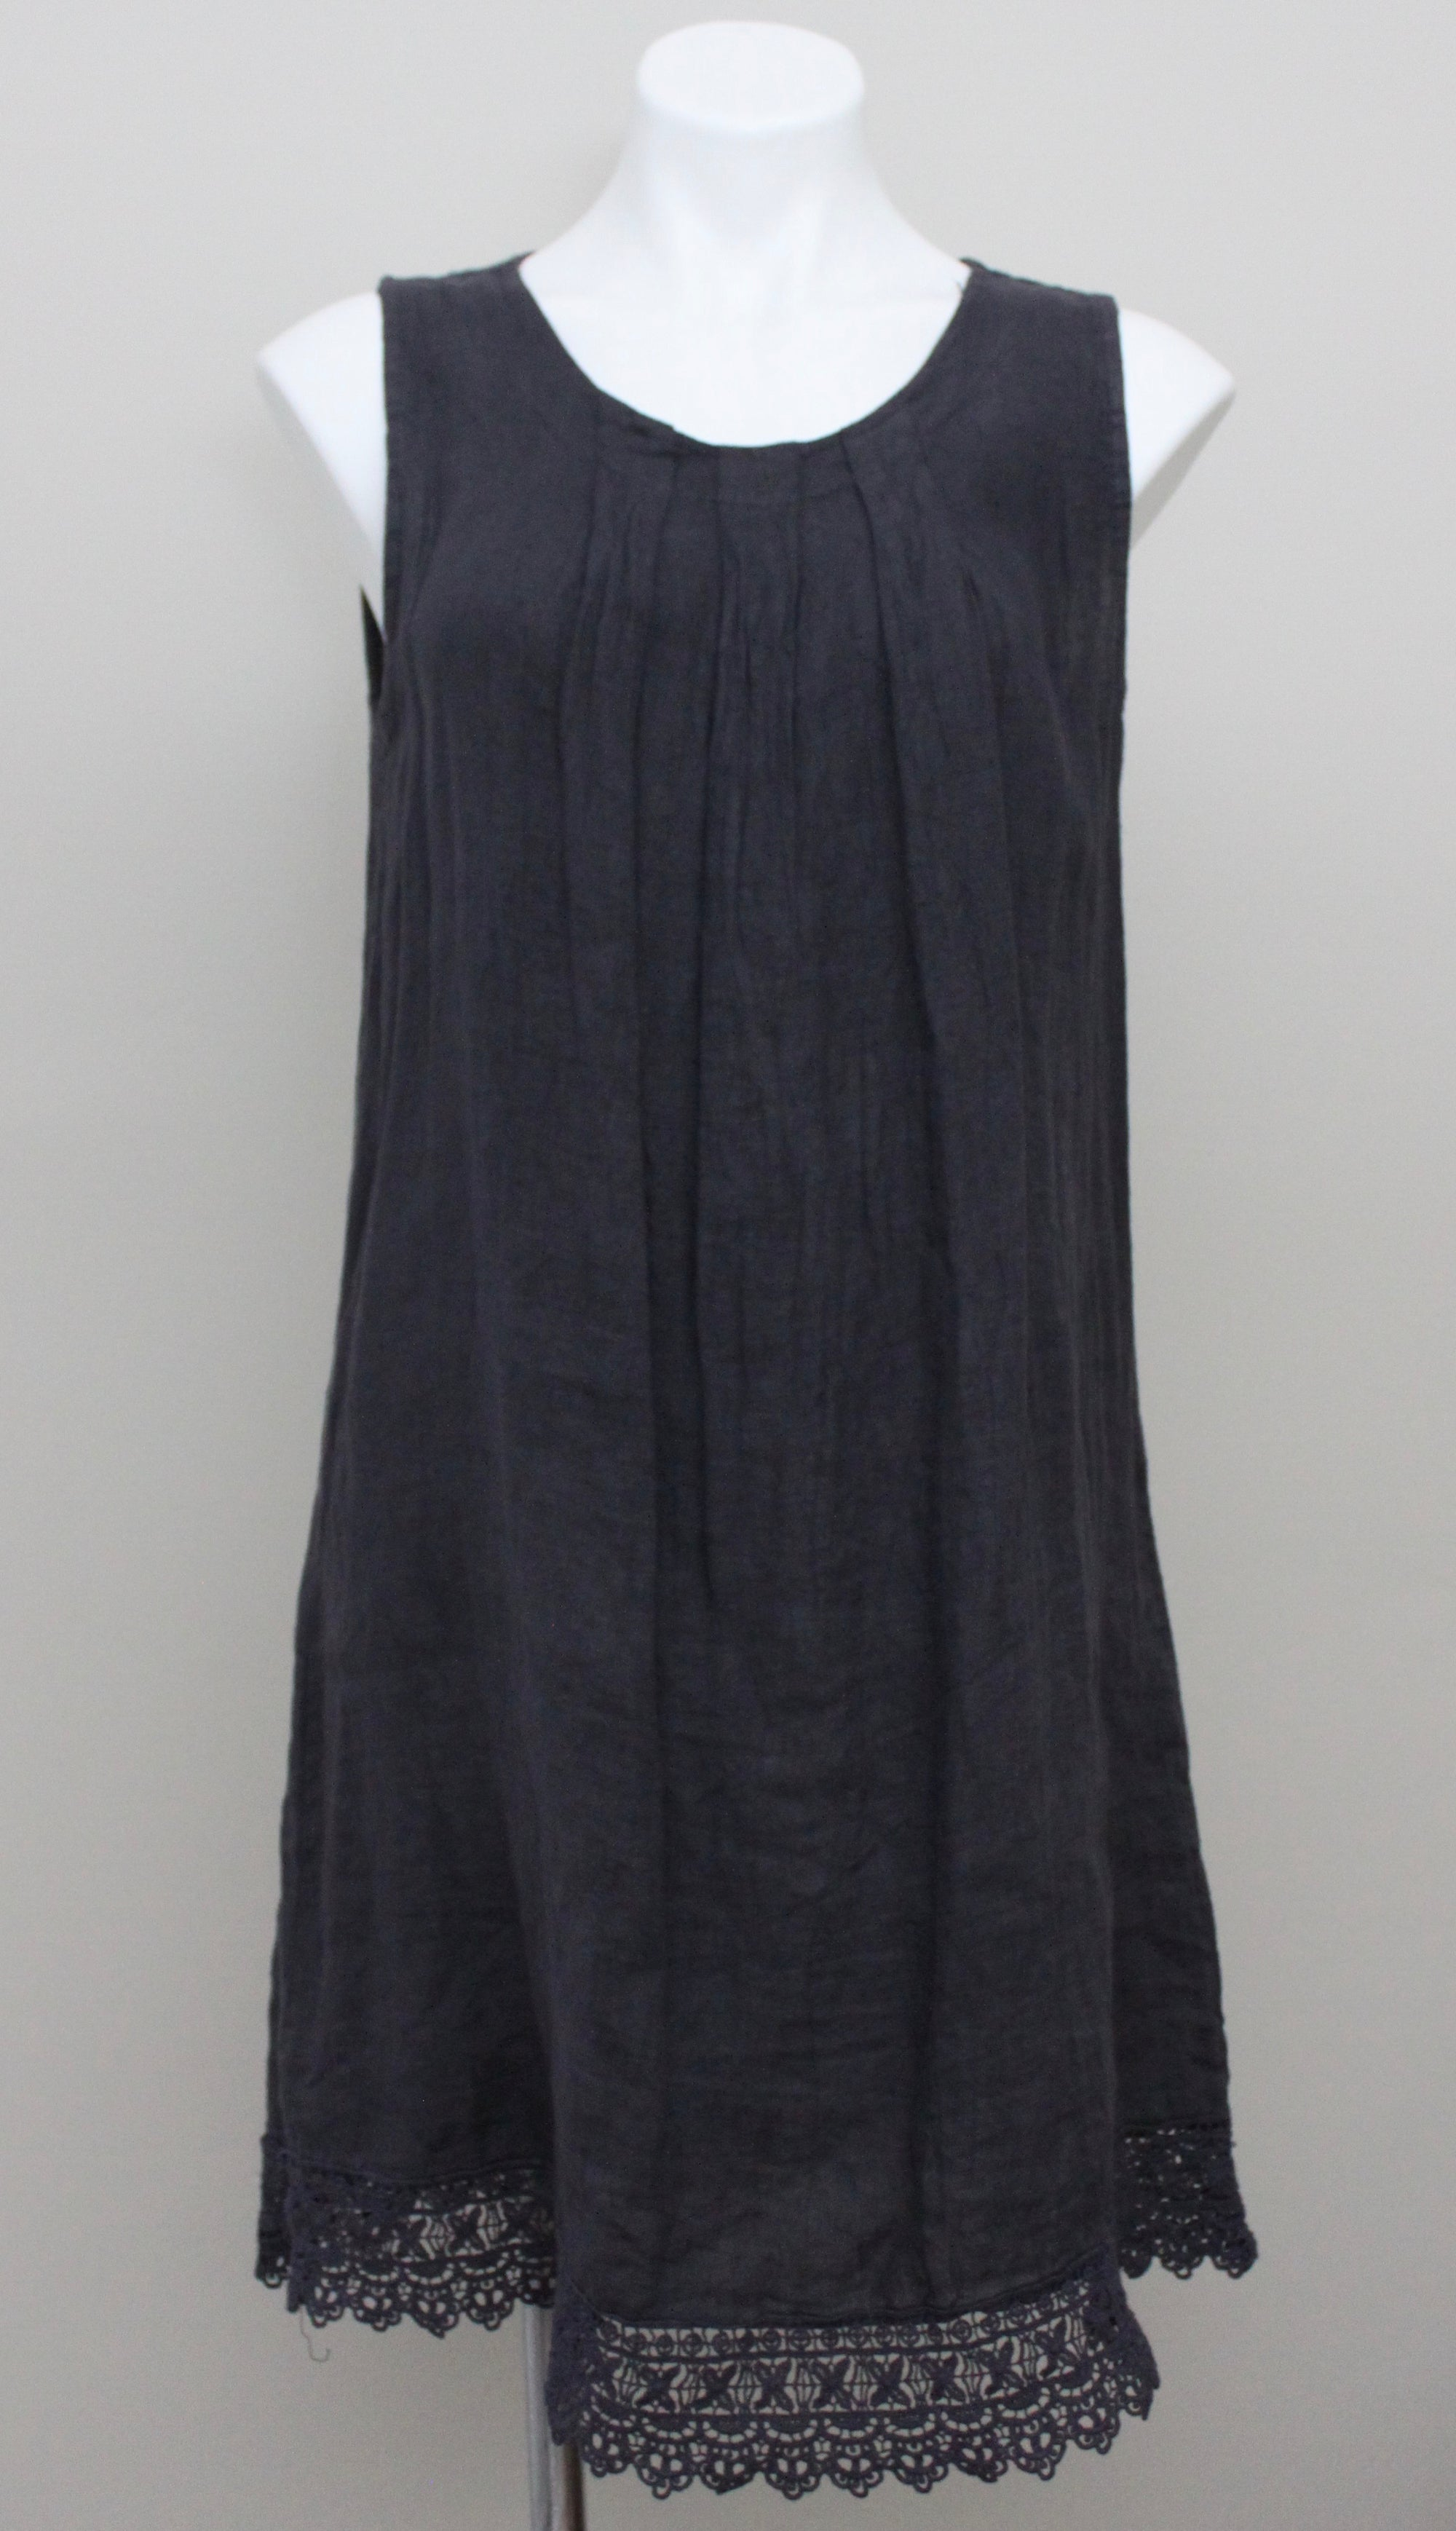 ROSEMARINE ITALY slate gray linen dress crochet hem